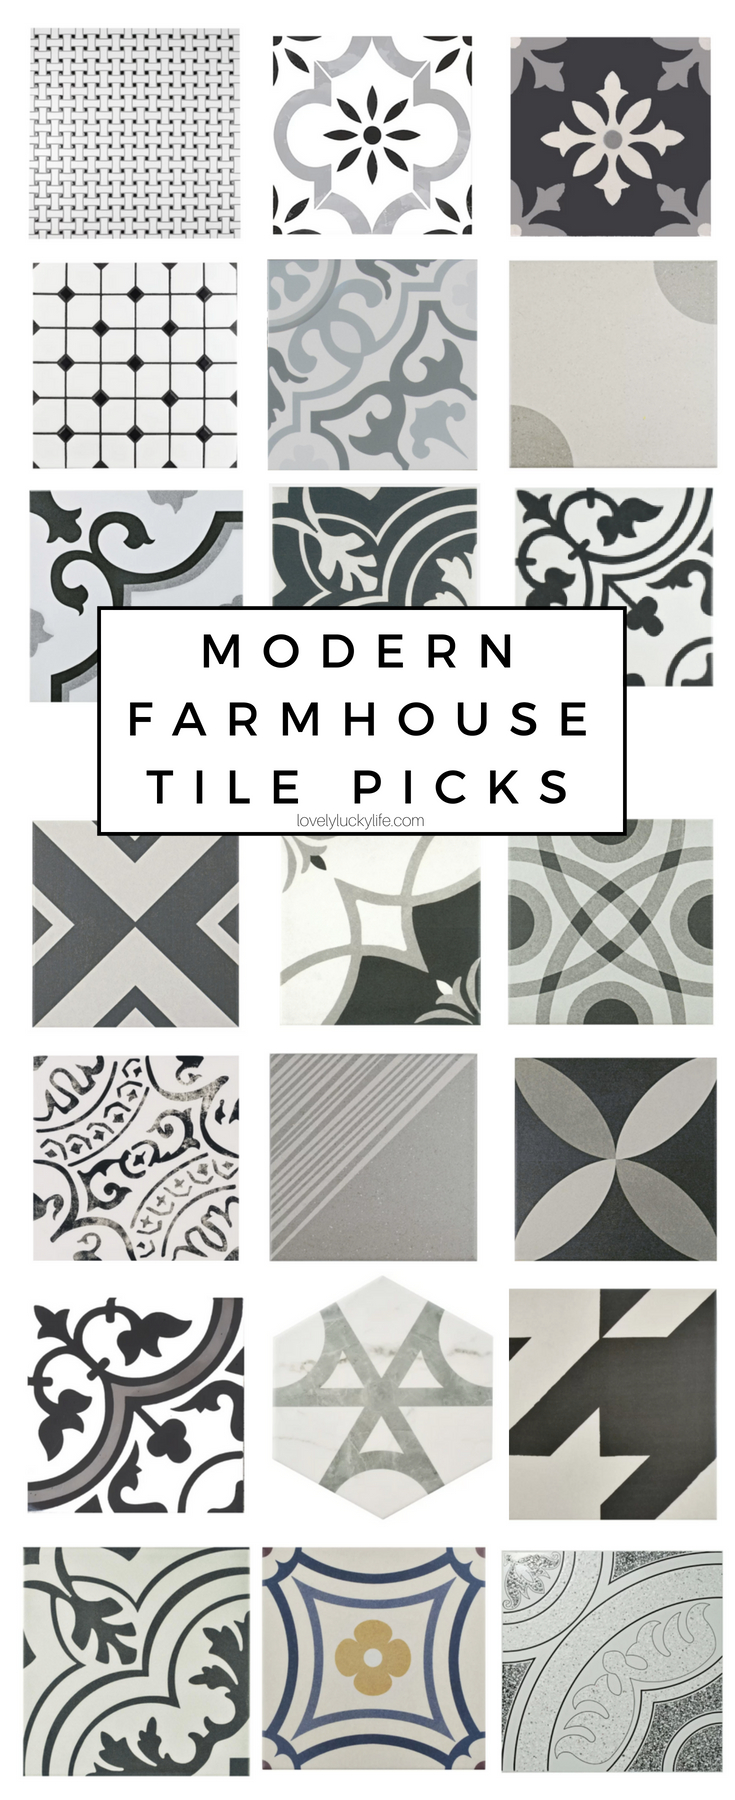 modern farmhouse tile options - geometric tile choices for a modern farmhouse vibe a la Magnolia & Chip & Jo!